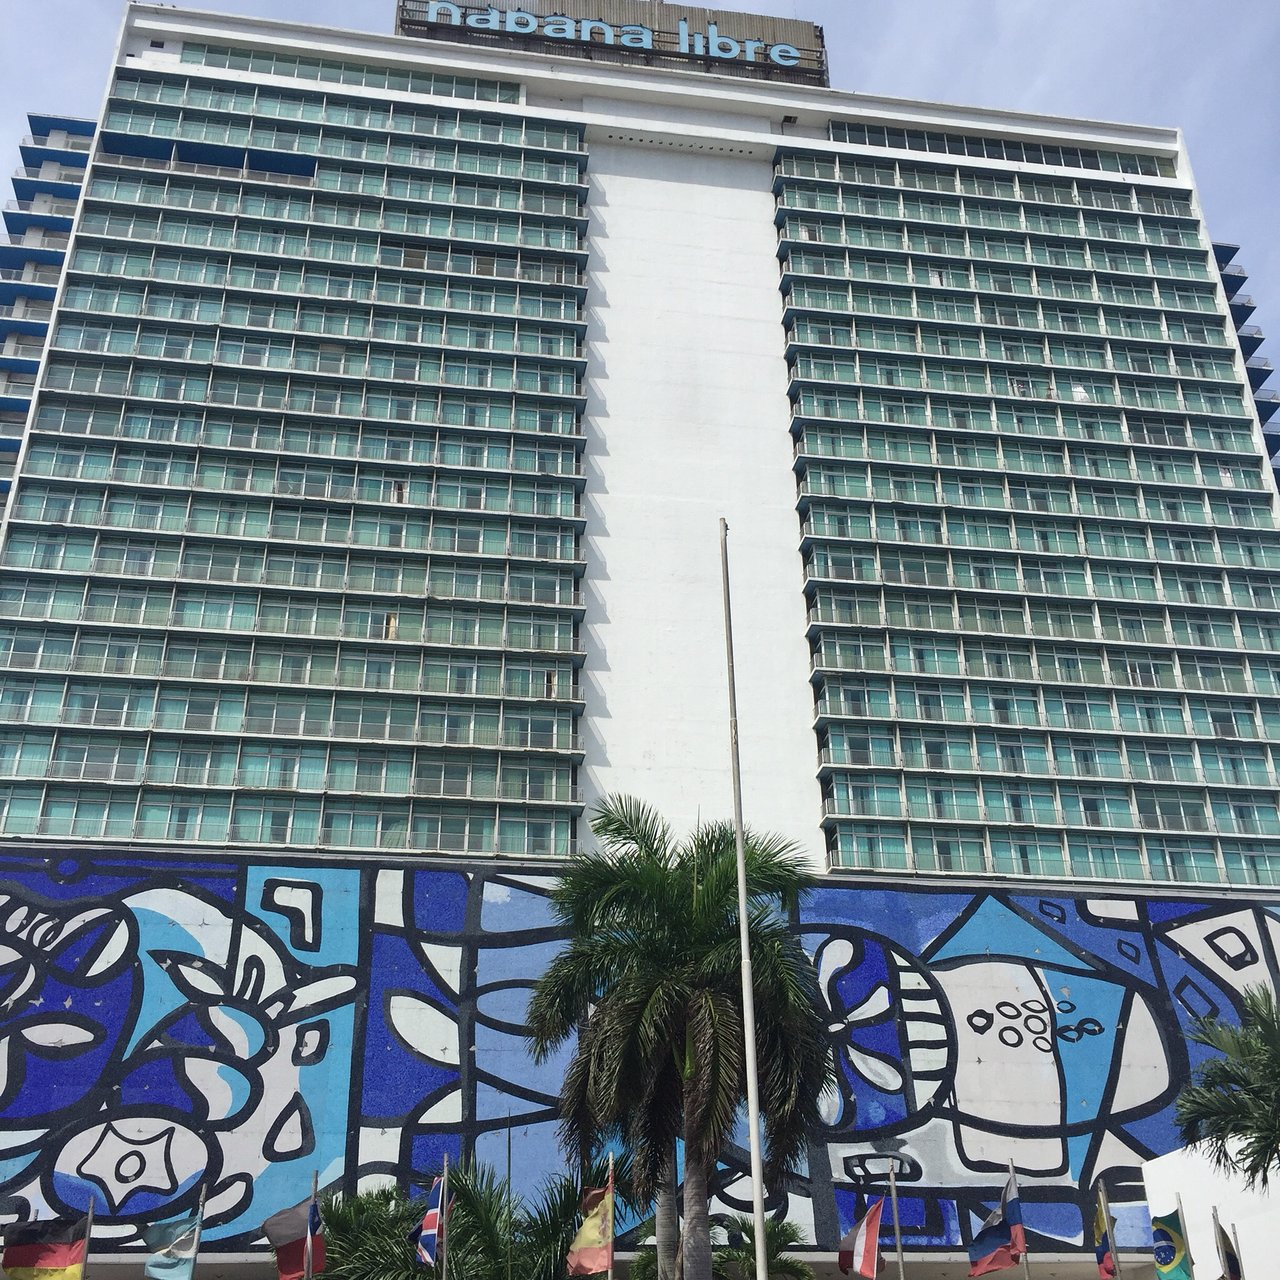 Hotel Tryp Habana Libre 5 Tryp Habana Libre Updated 2019 Prices Condominium Reviews